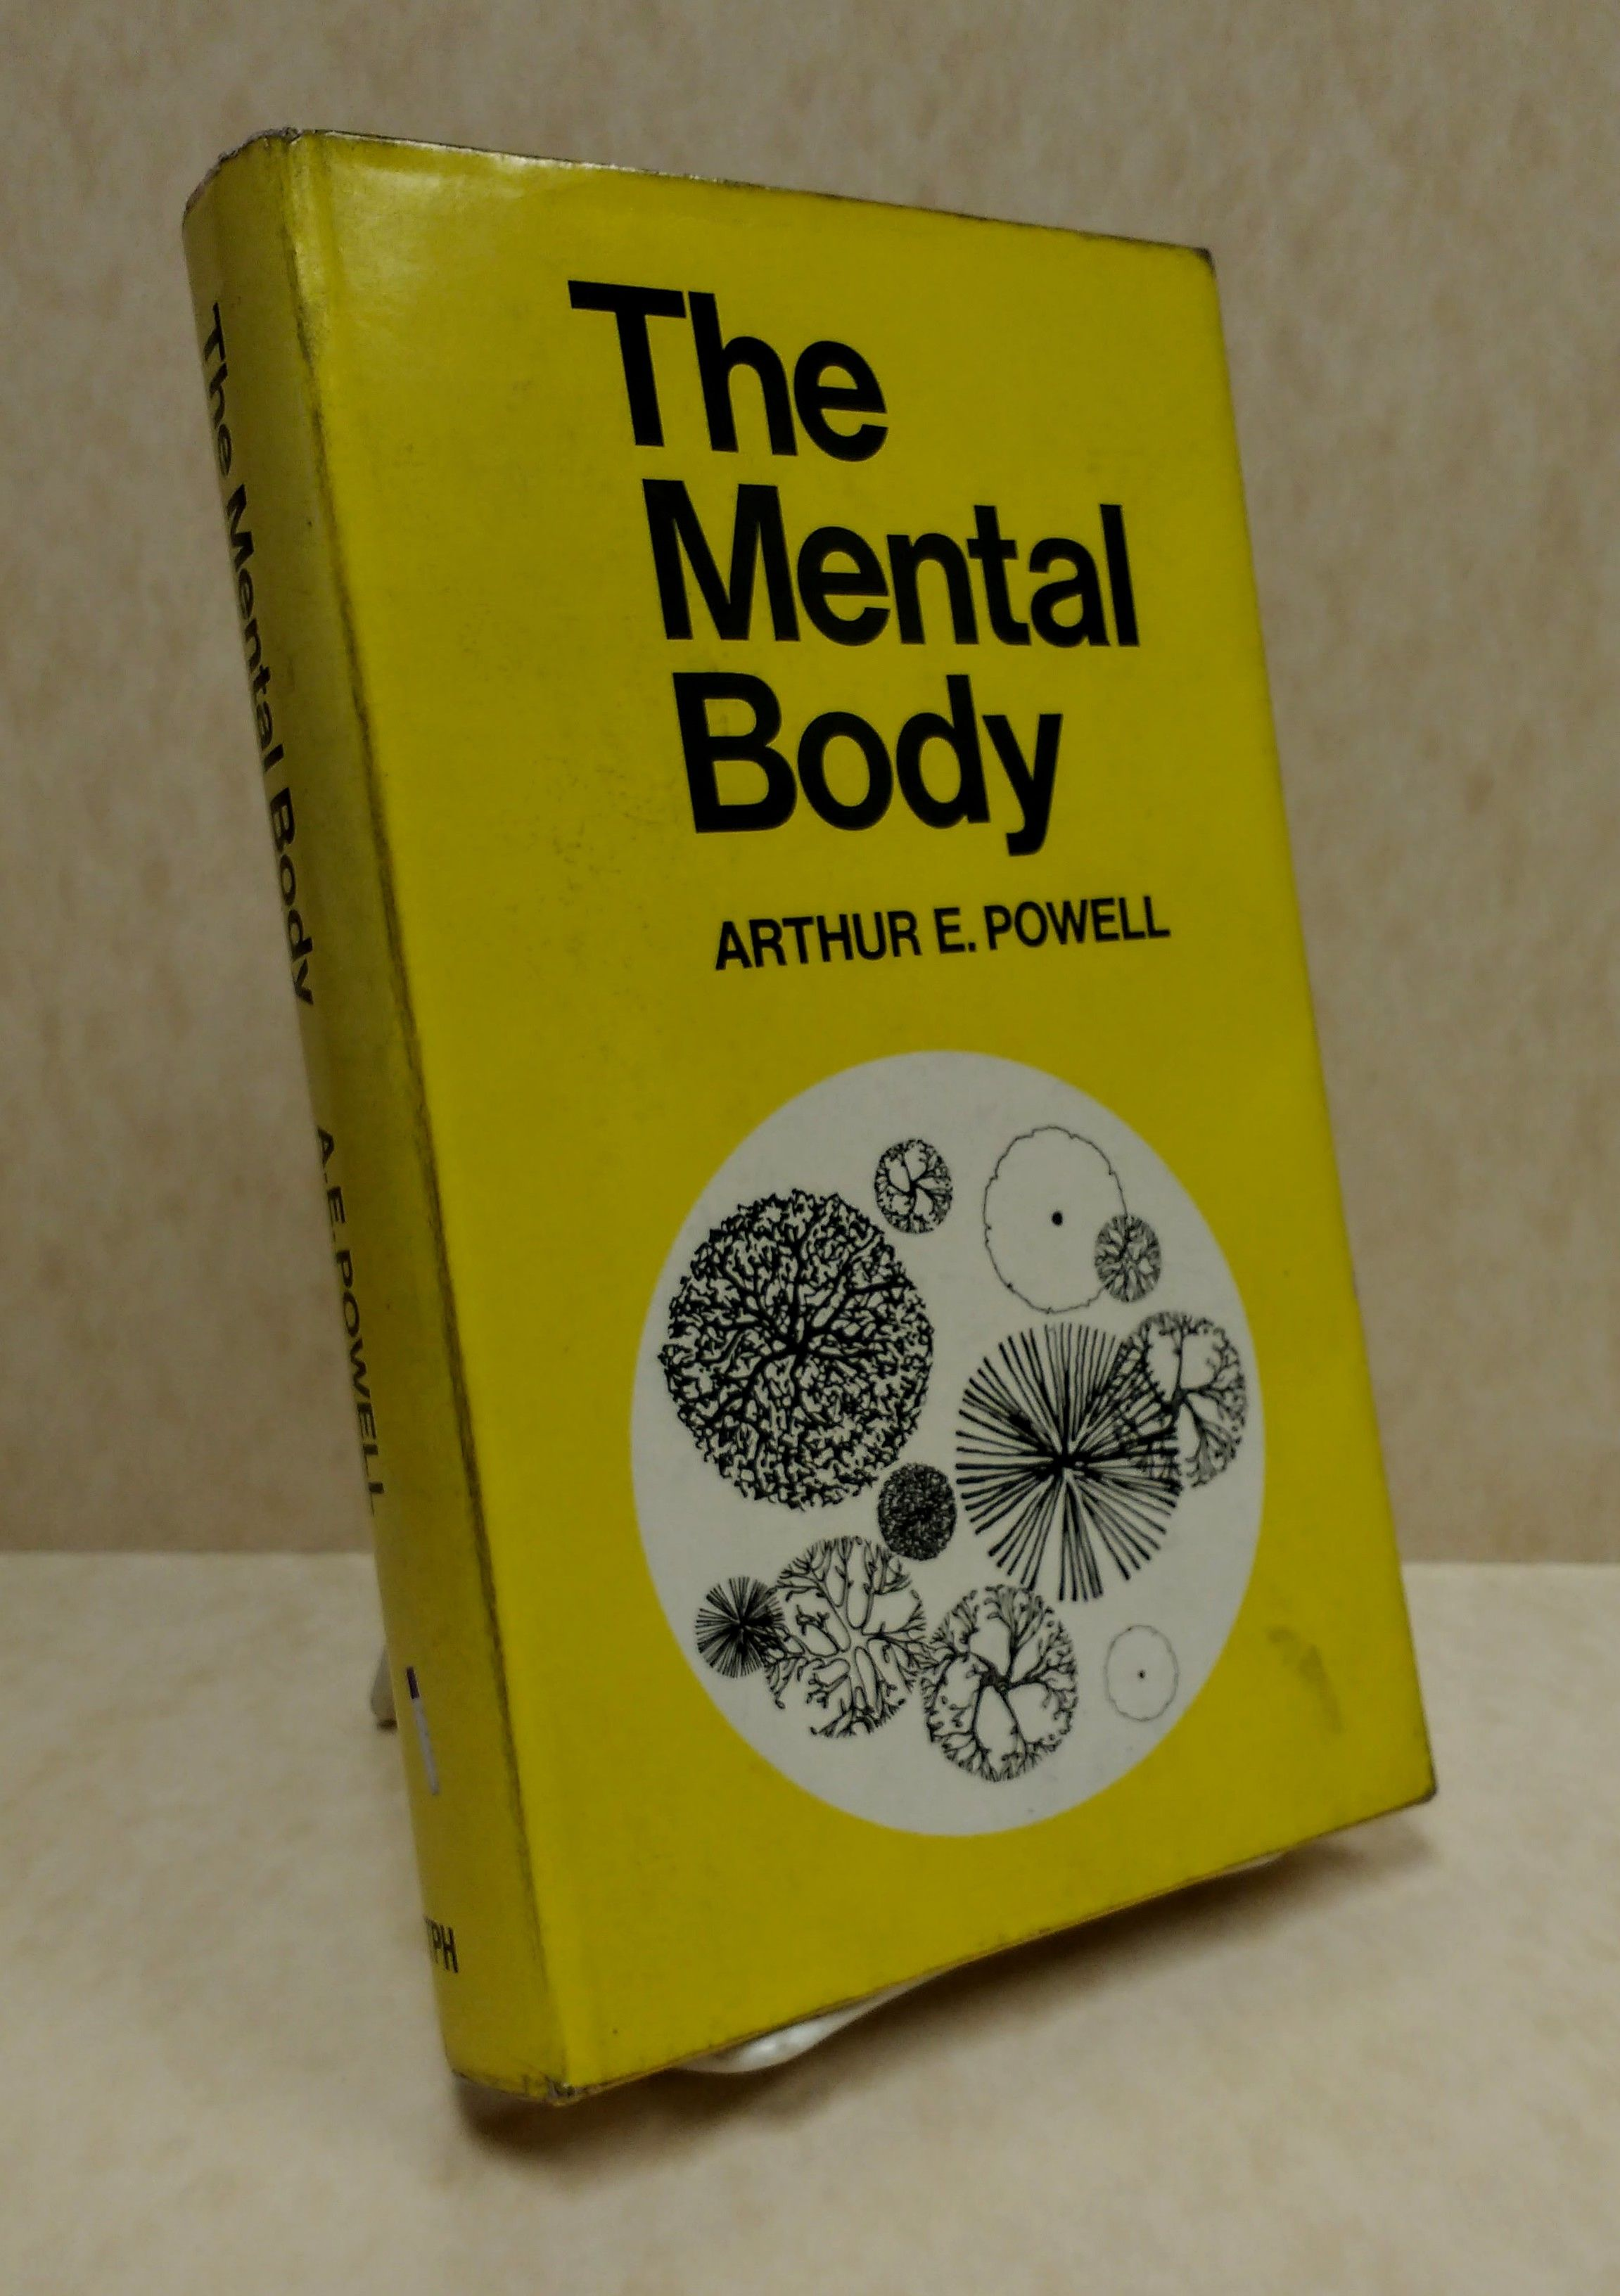 The Mental Body, Arthur E Powell